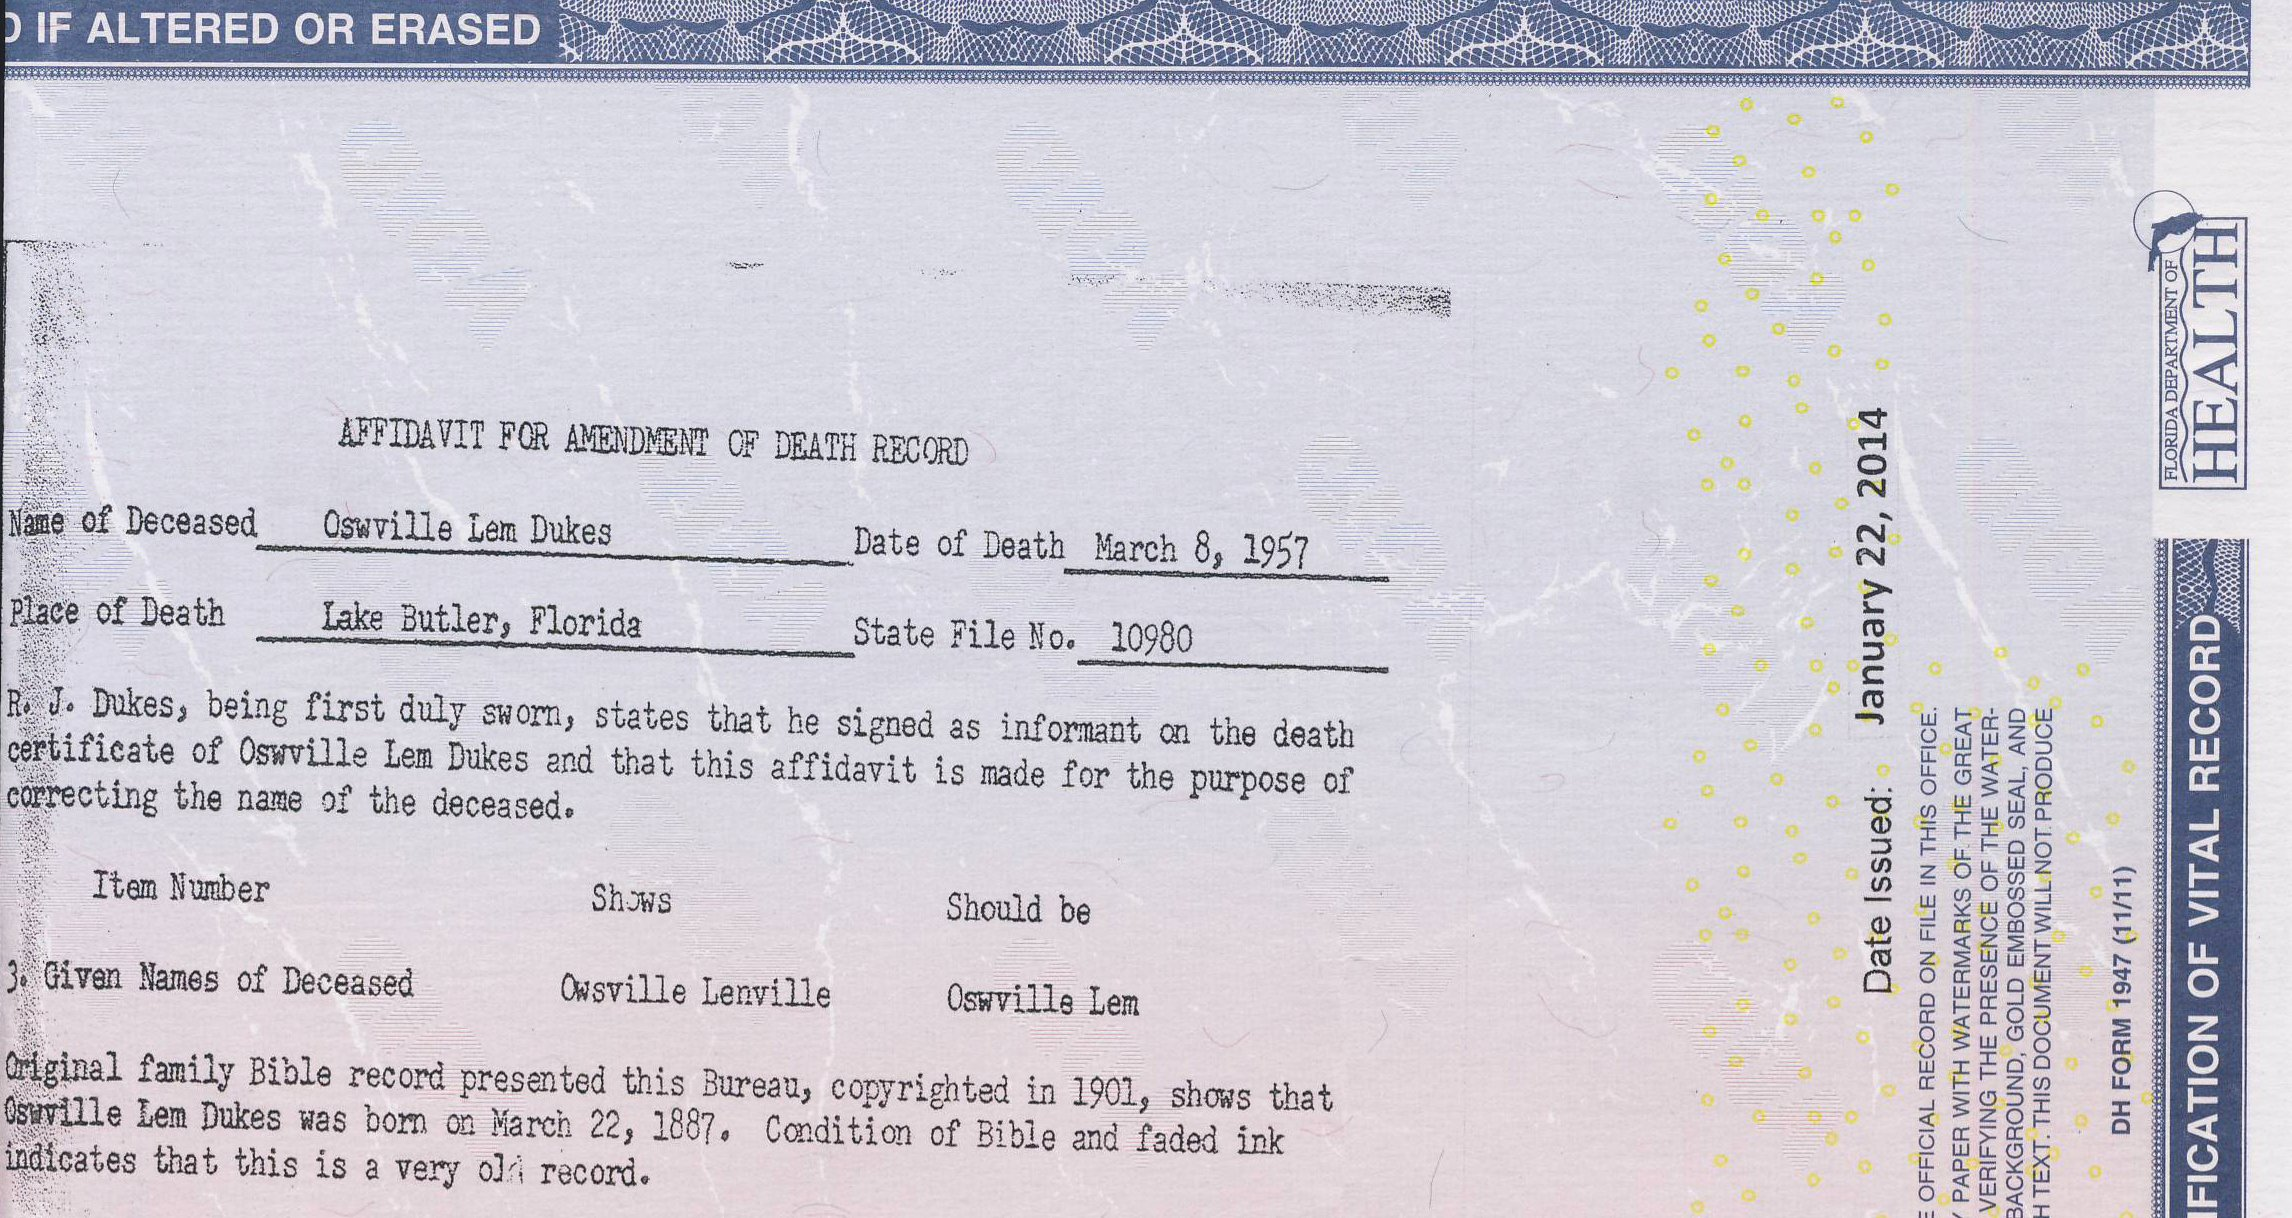 Florida Death Certificate Sample Beautiful An Amended Death Certificate